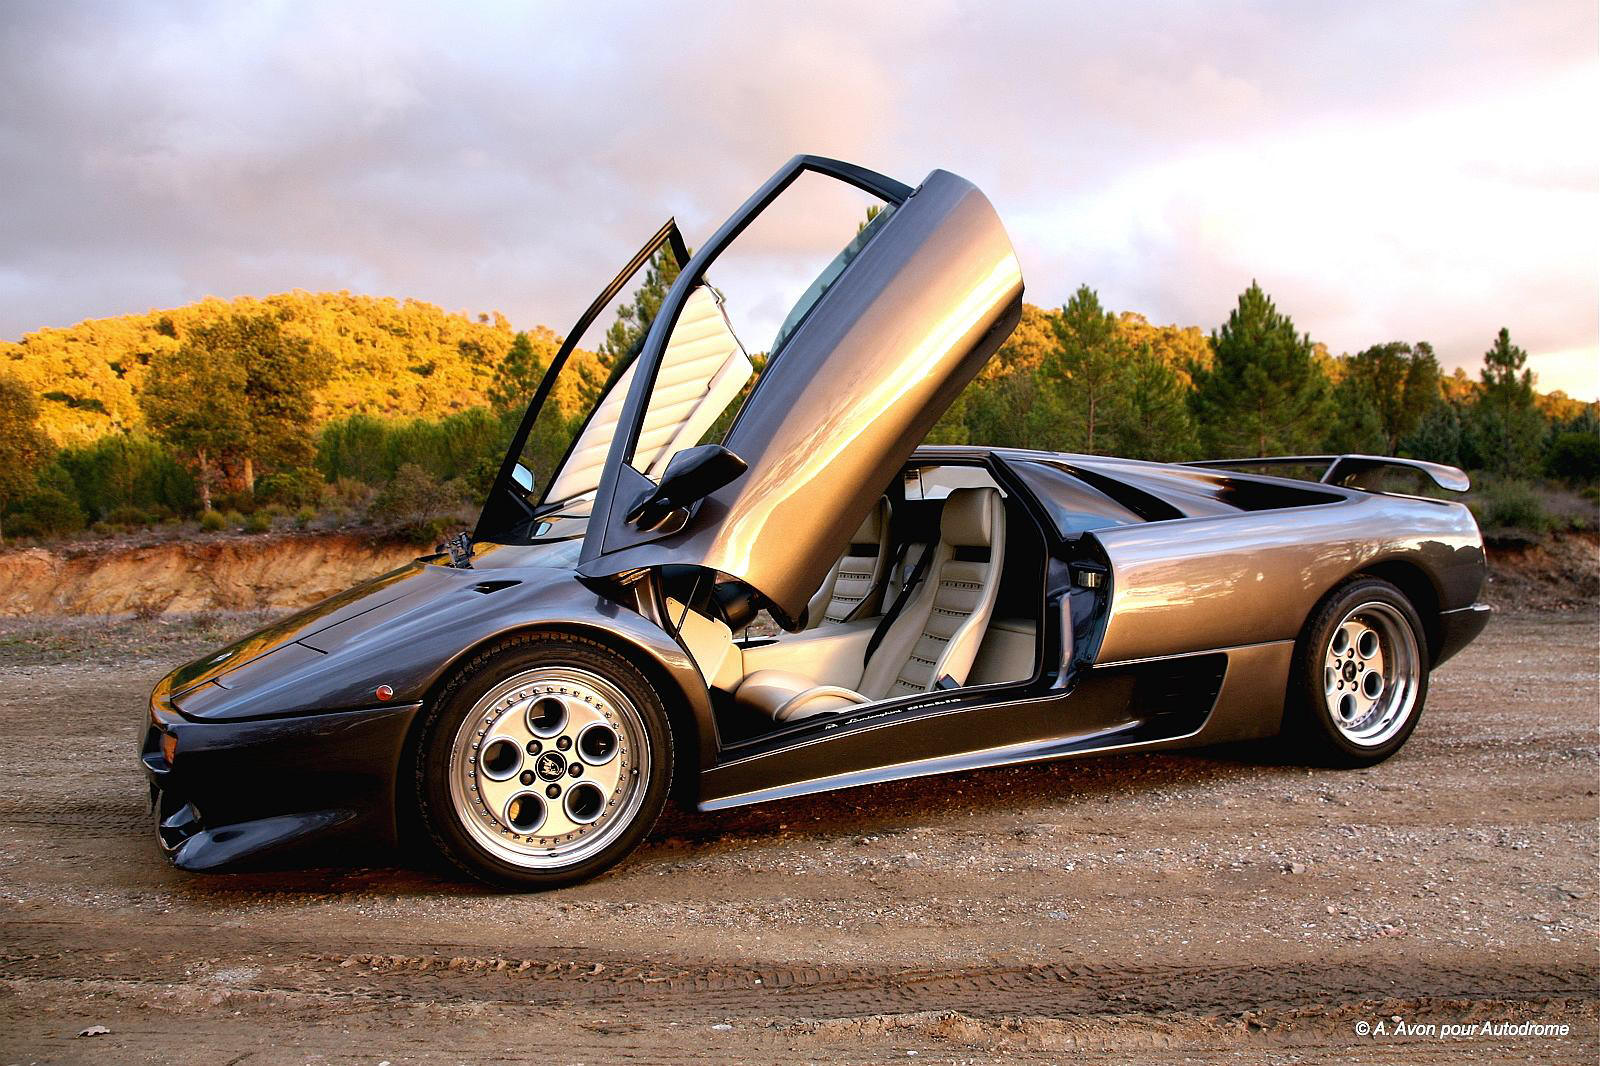 Lamborghini Diablo Vt Roadster Technical Details History Photos On Better Parts Ltd